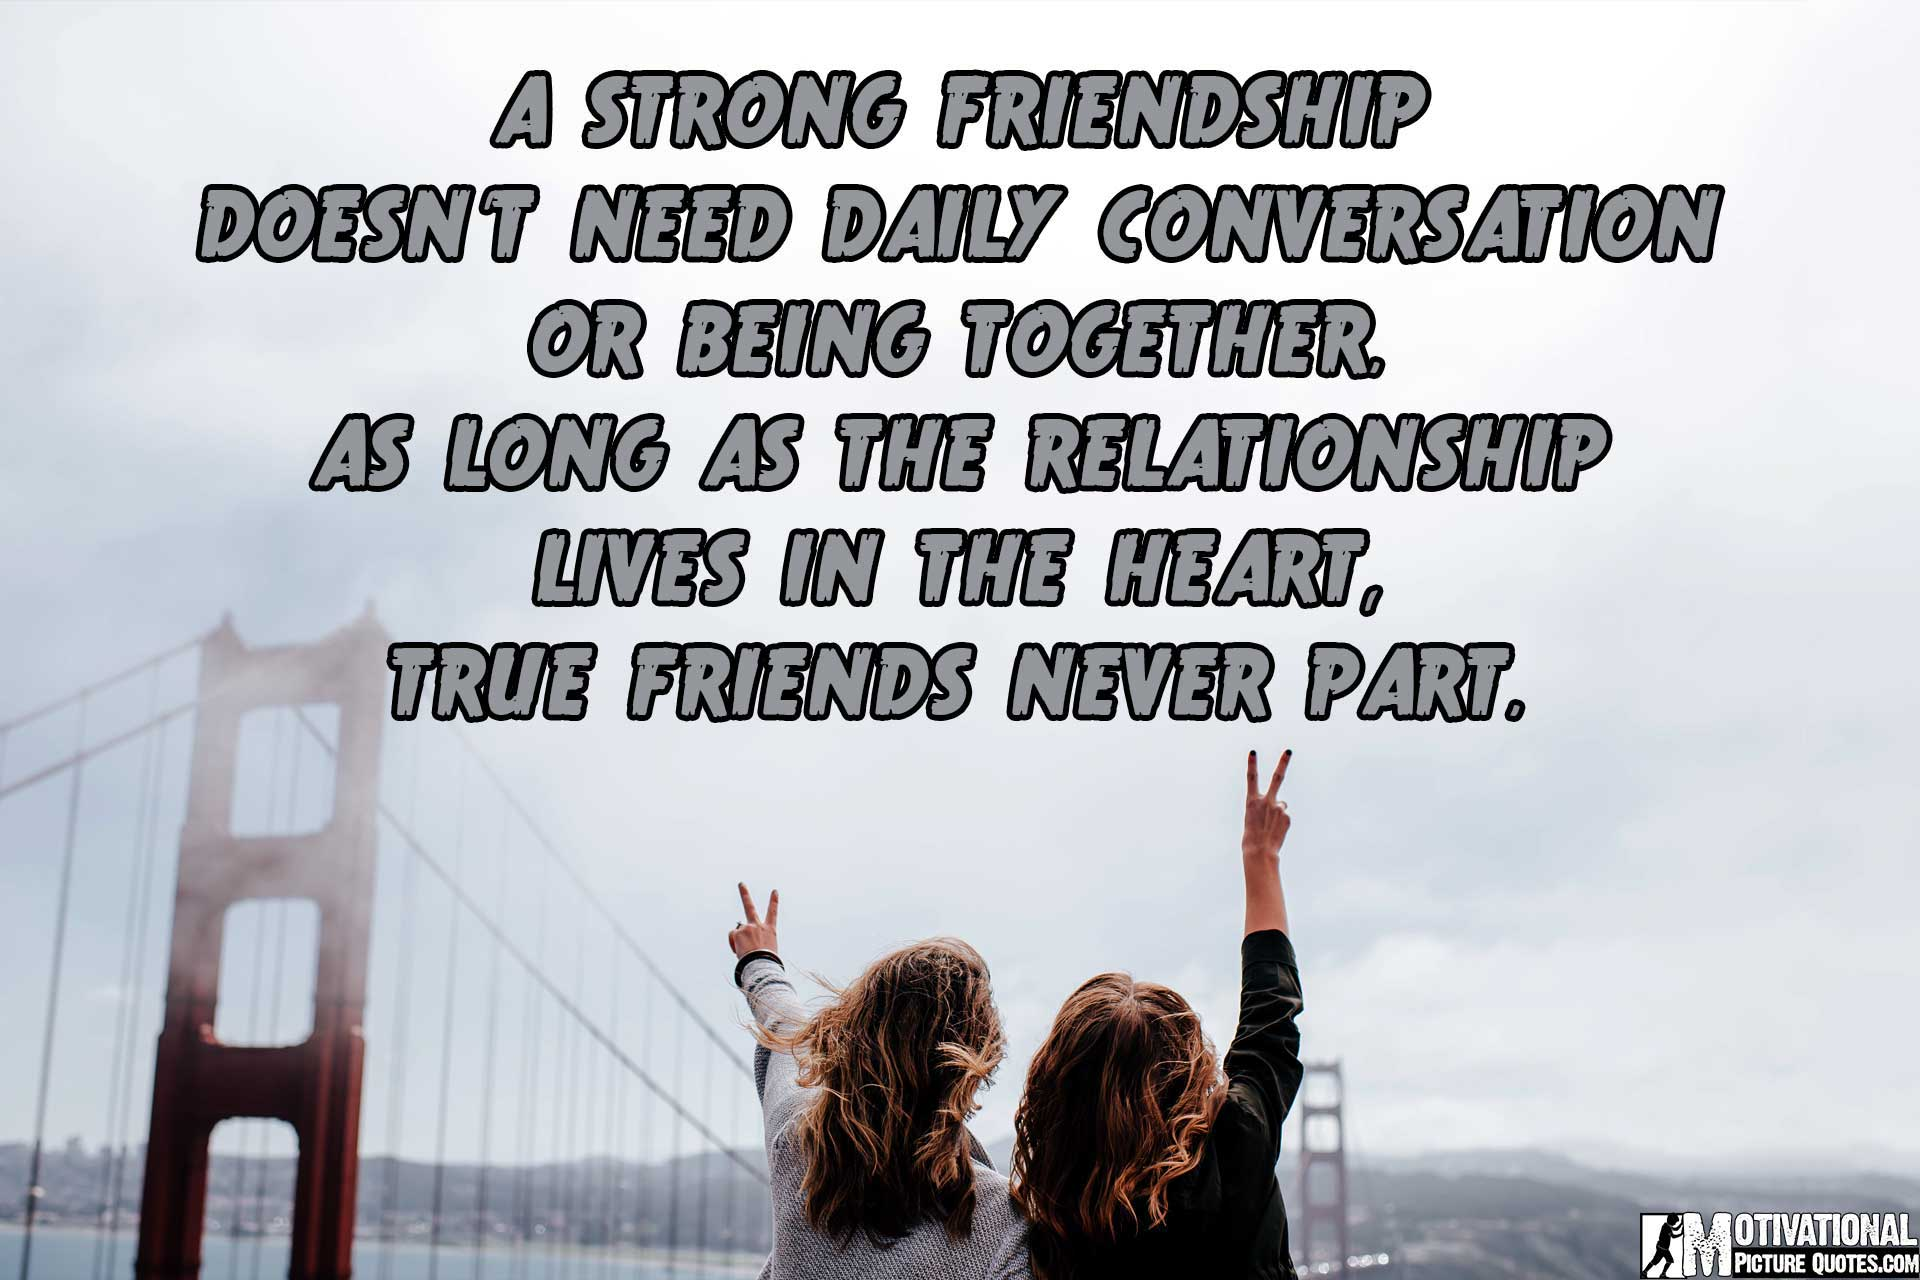 25+ Inspirational Friendship Quotes Images